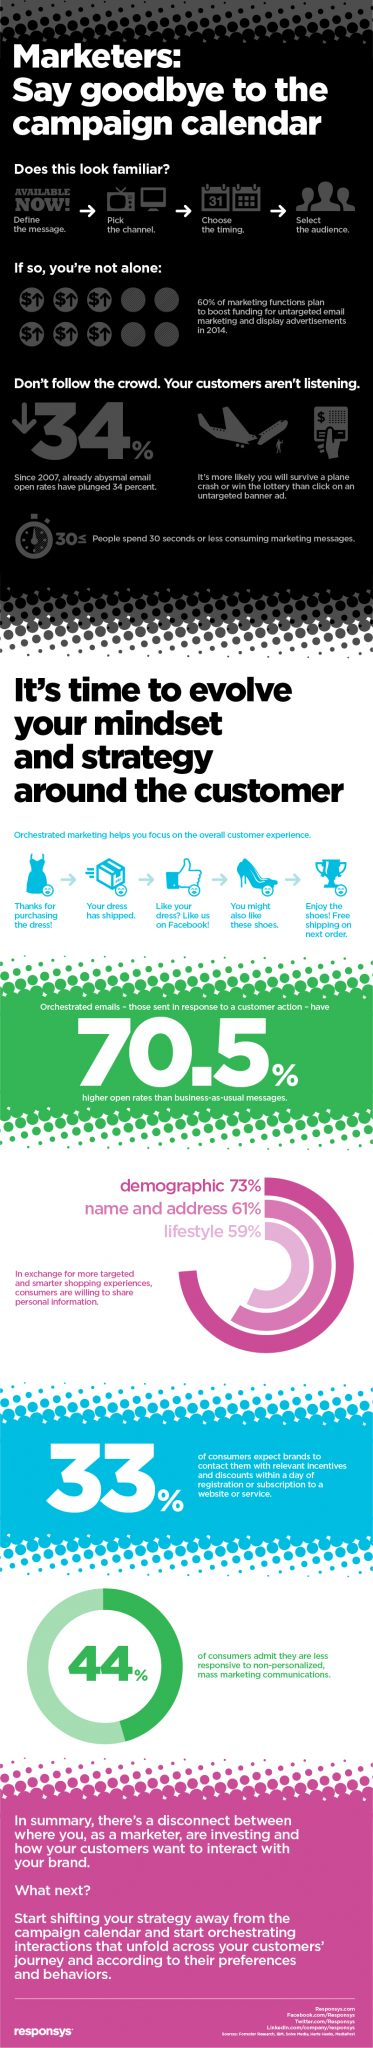 Marketing Orchestration Infographic